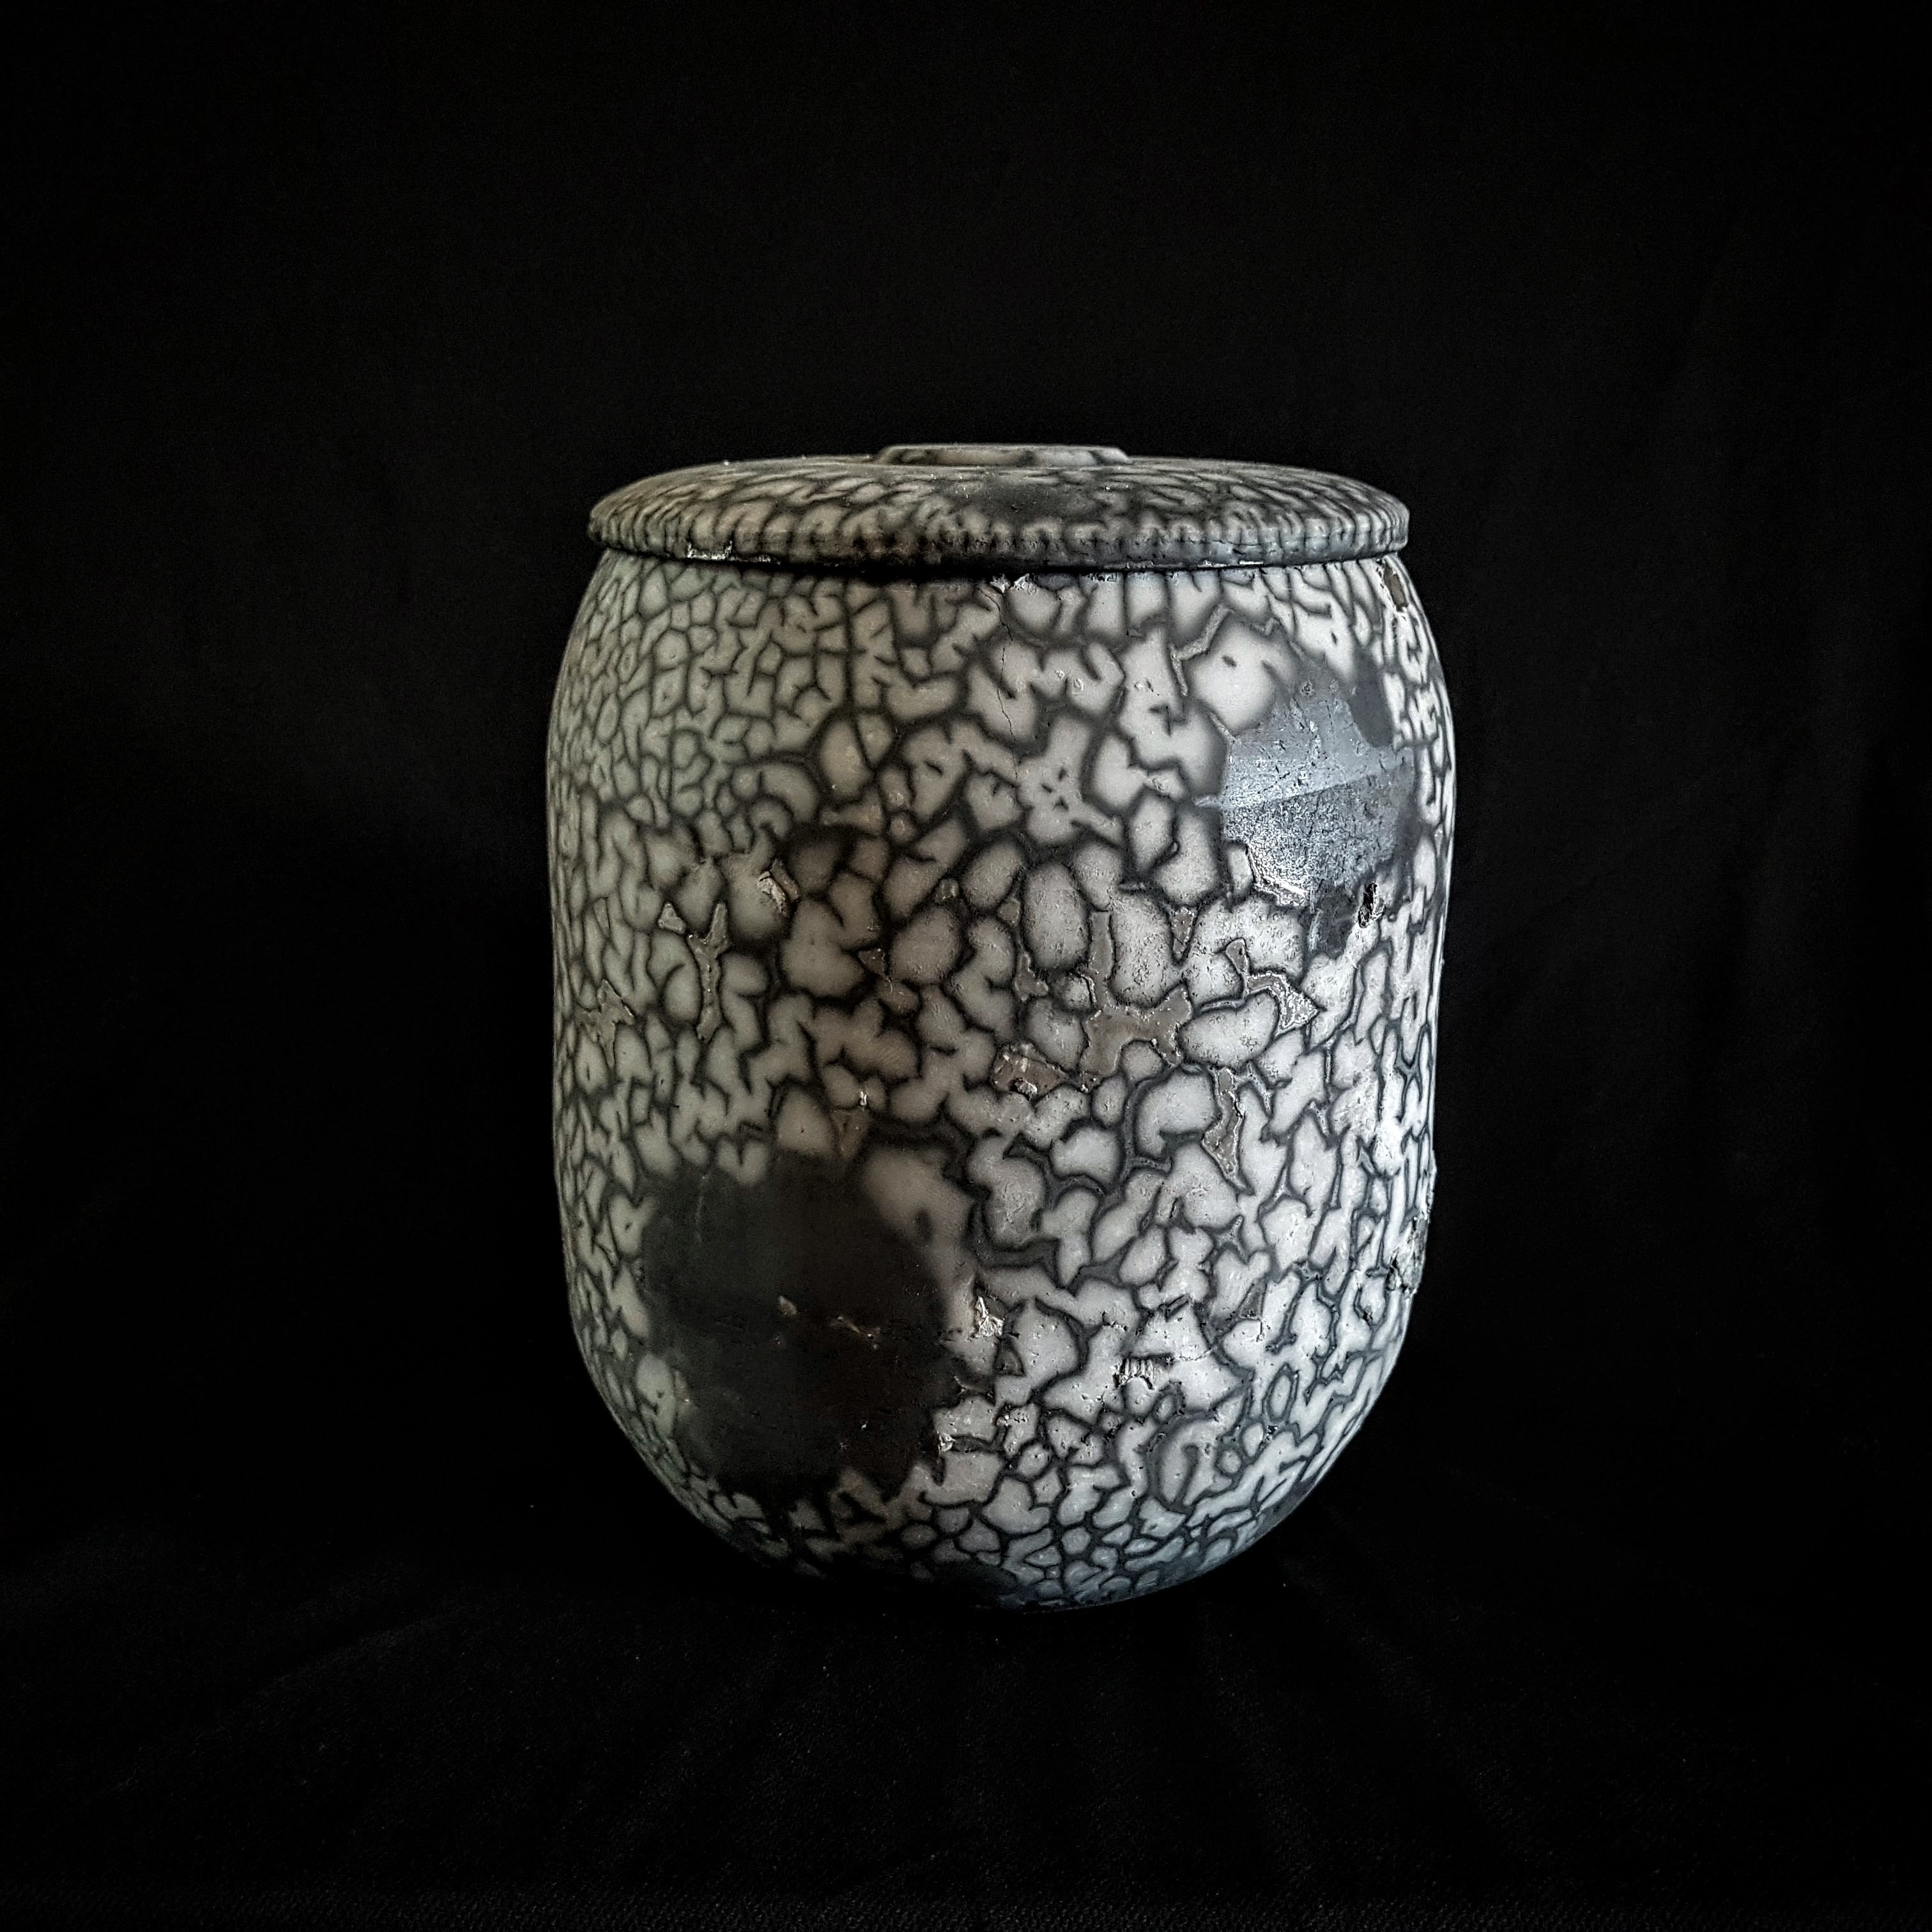 White spot Artistic Unique Urn, One of a Kind piece Handcrafted by Naiimpotery.